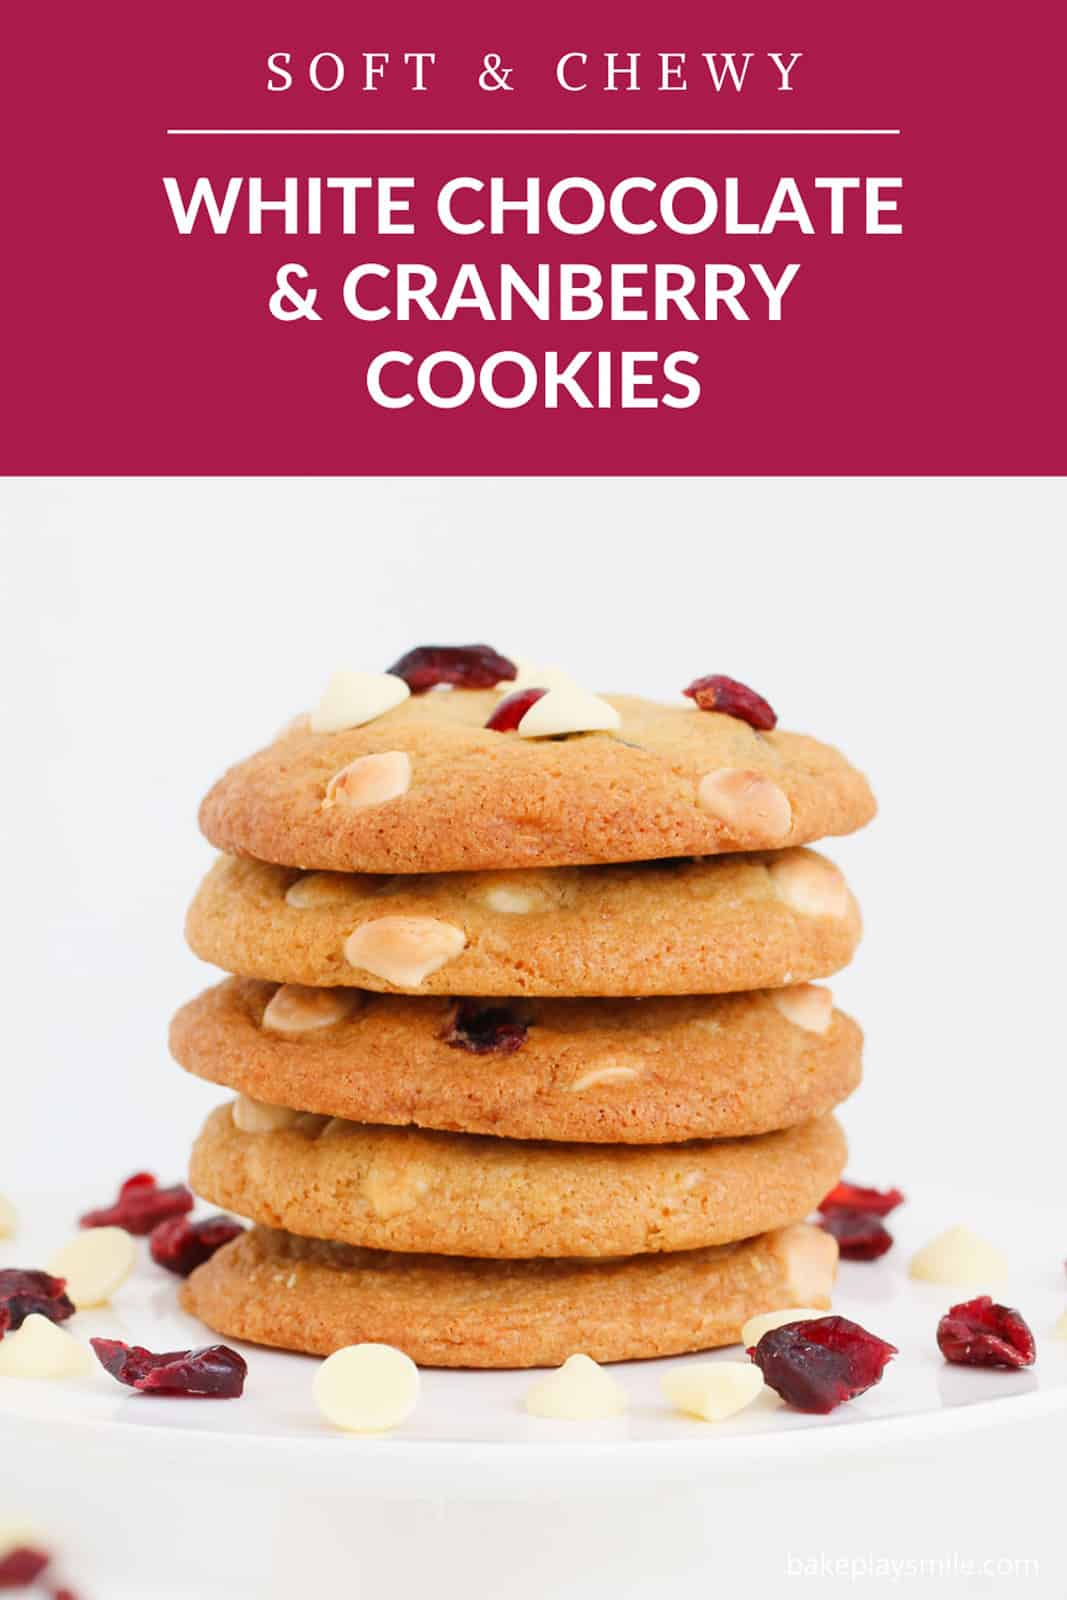 A Pinterest image with a stack of cookies with white chocolate chips and cranberries.